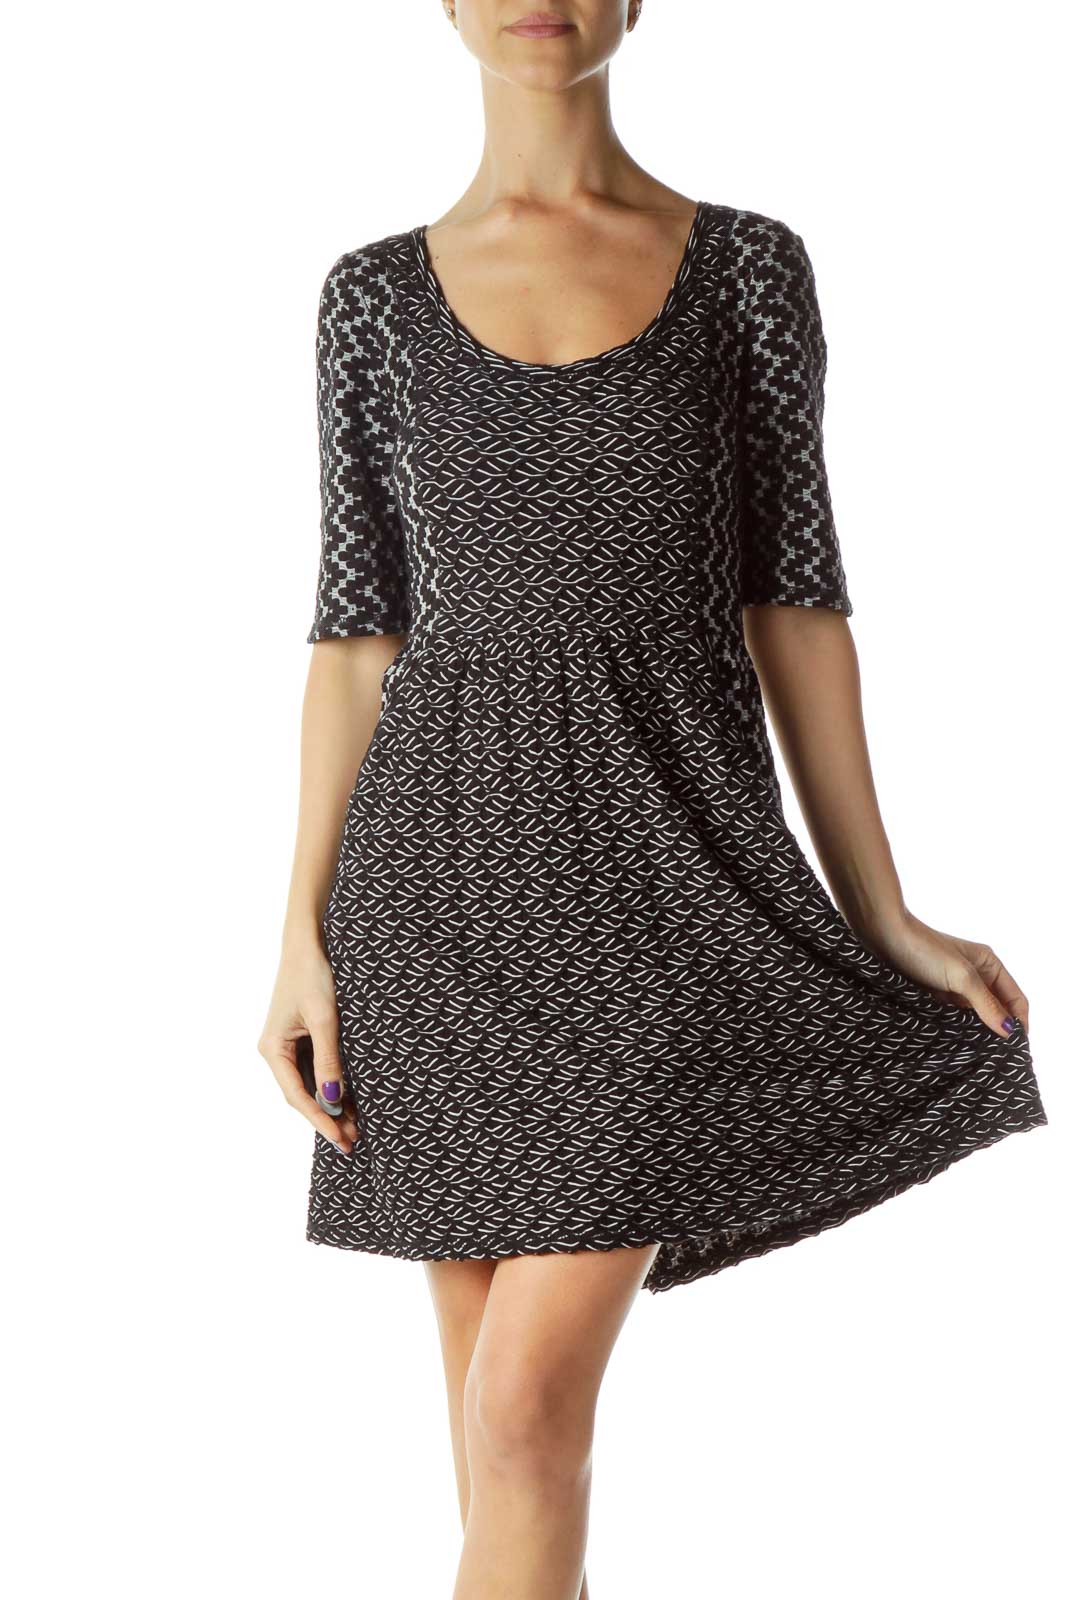 Black White Textured Woven Dress Front